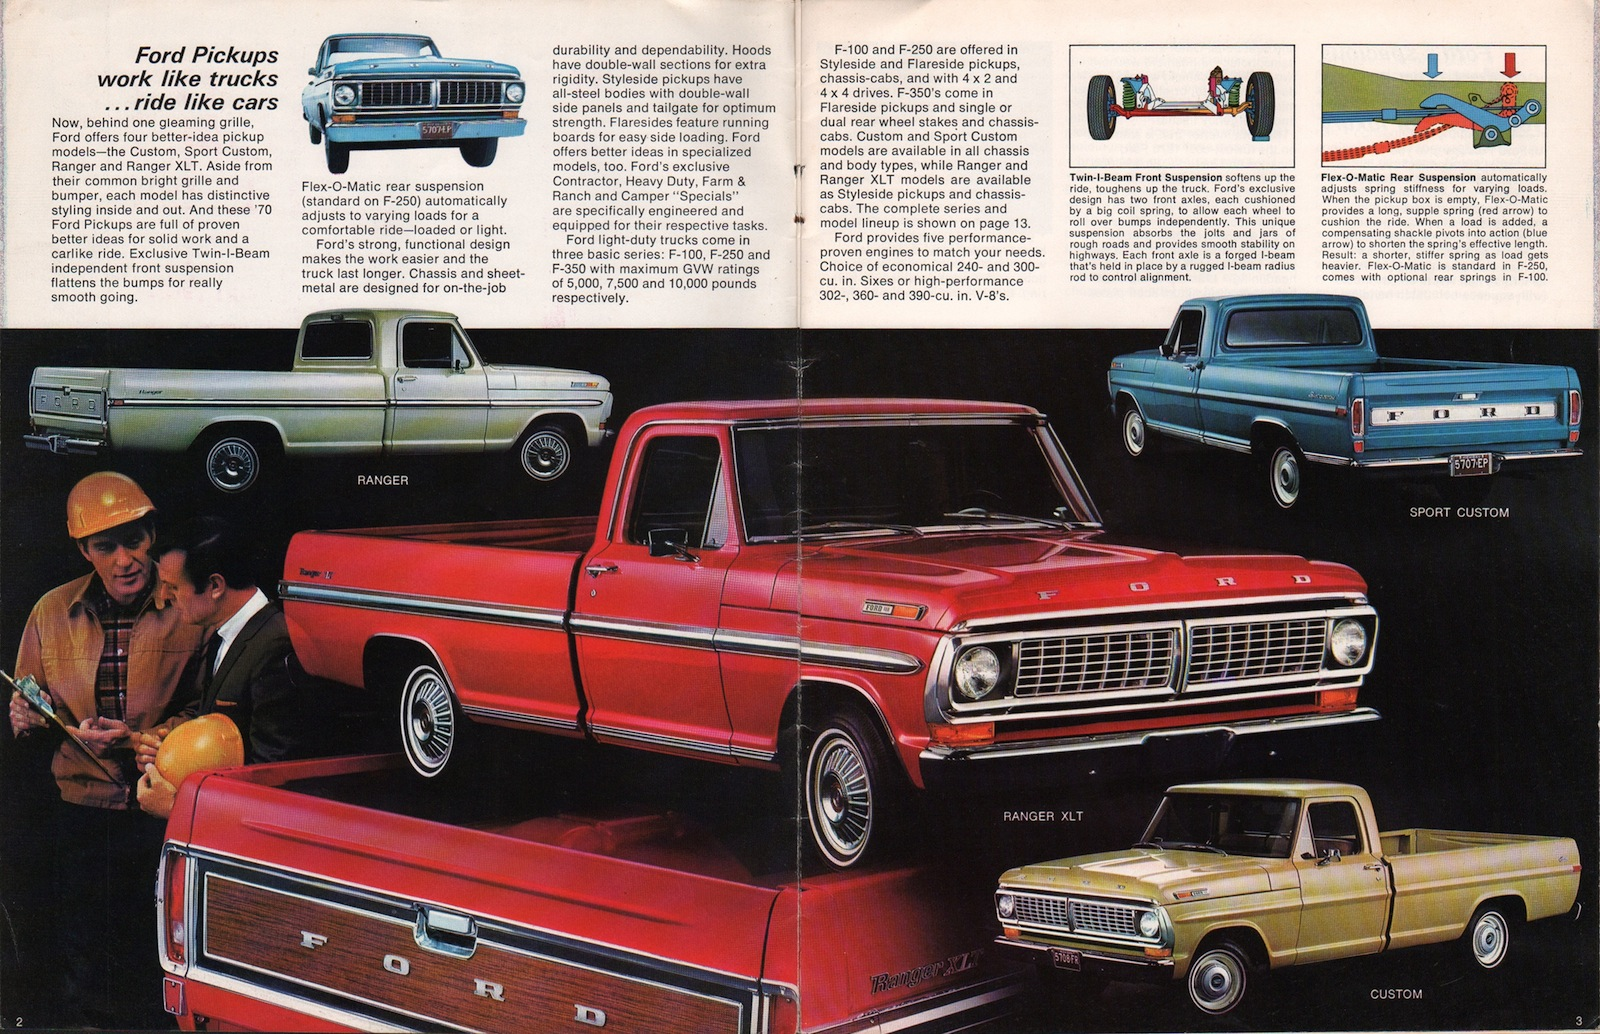 Ford Pickup in addition 1982 Chevy Luv Mikado 4 X 4 For Sale together with Bestop Supertop Truck Bed C er Shell in addition Brochuredisplay as well 4. on 1972 gmc truck brochure